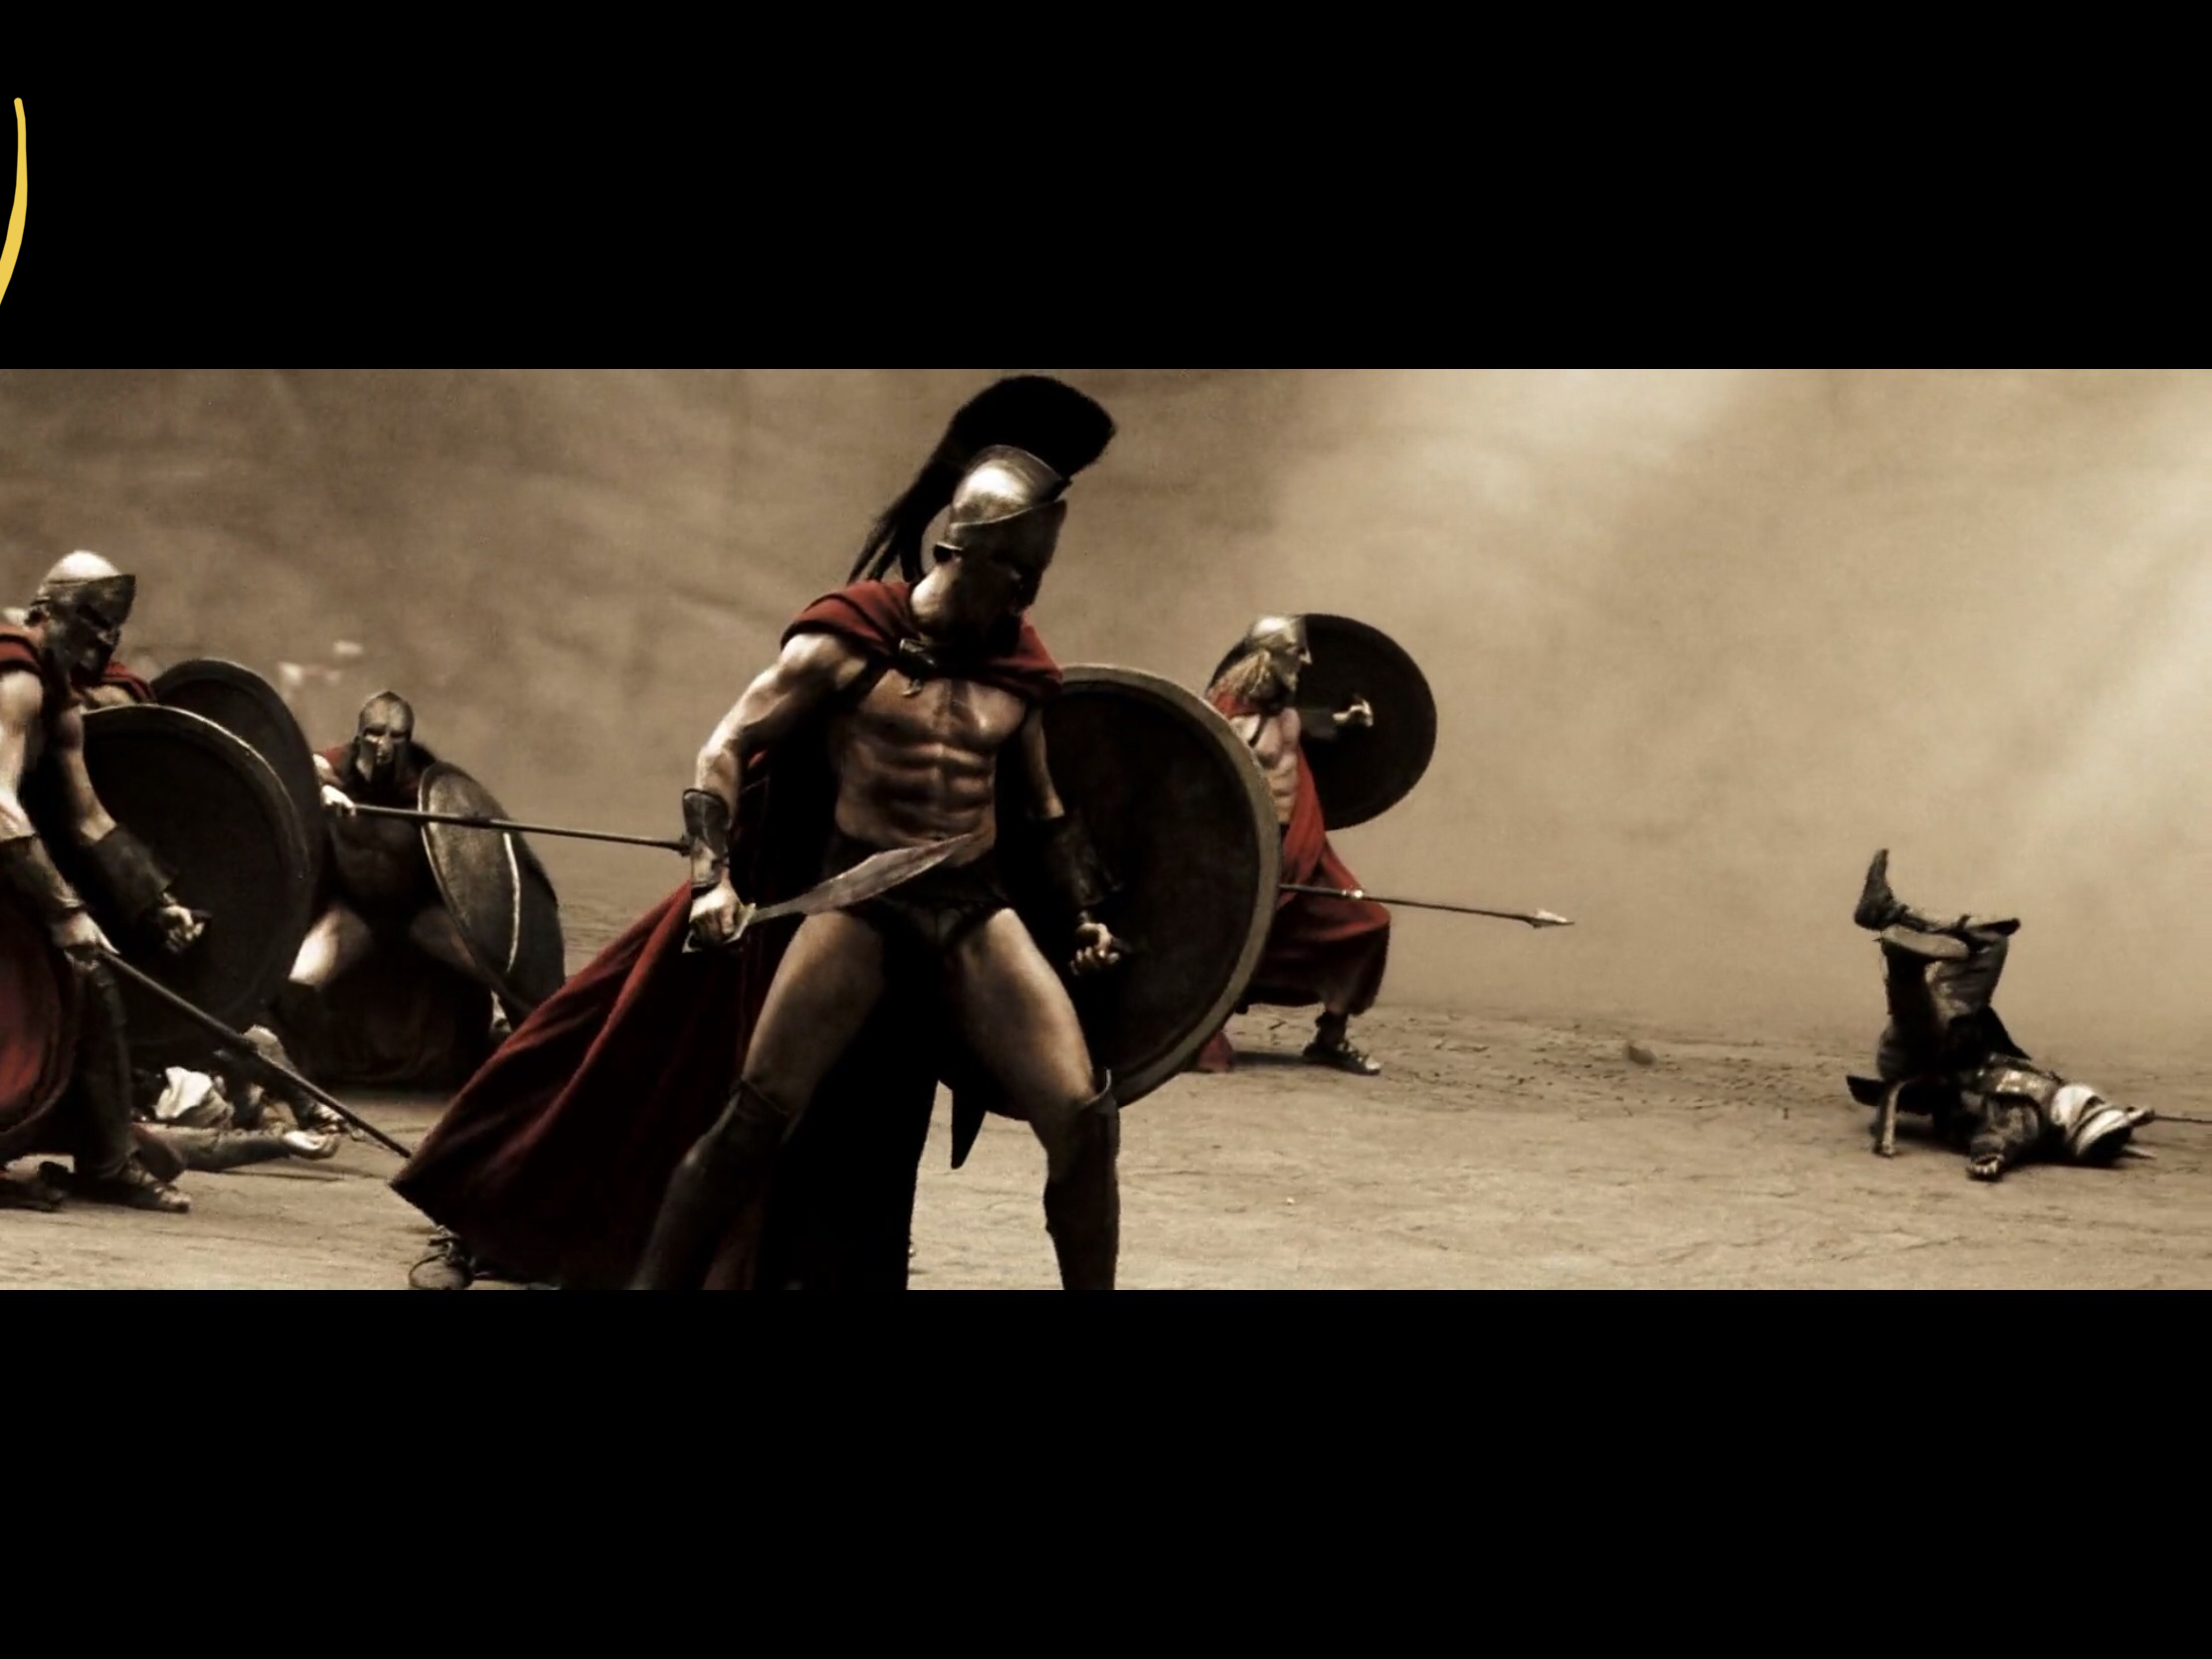 King Leonidas and the 300